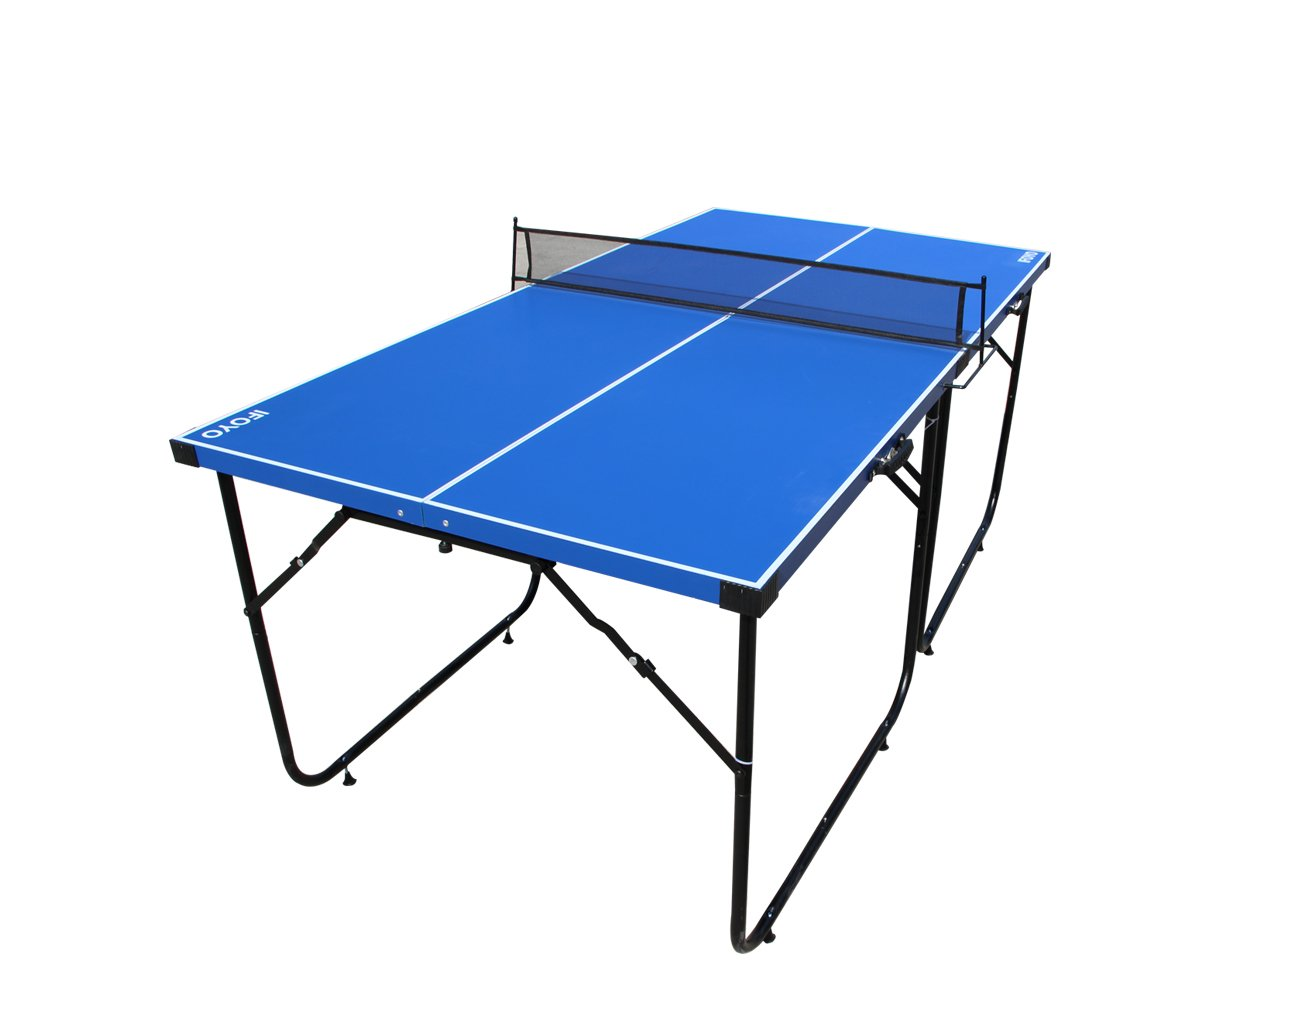 IFOYO Table Tennis Table, 6ft Midsize Ping Pong Table 4-Piece Folding Portable Indoor Outdoor Tennis Table with Net Set for Adults, Kids, Quick Assembly, Blue